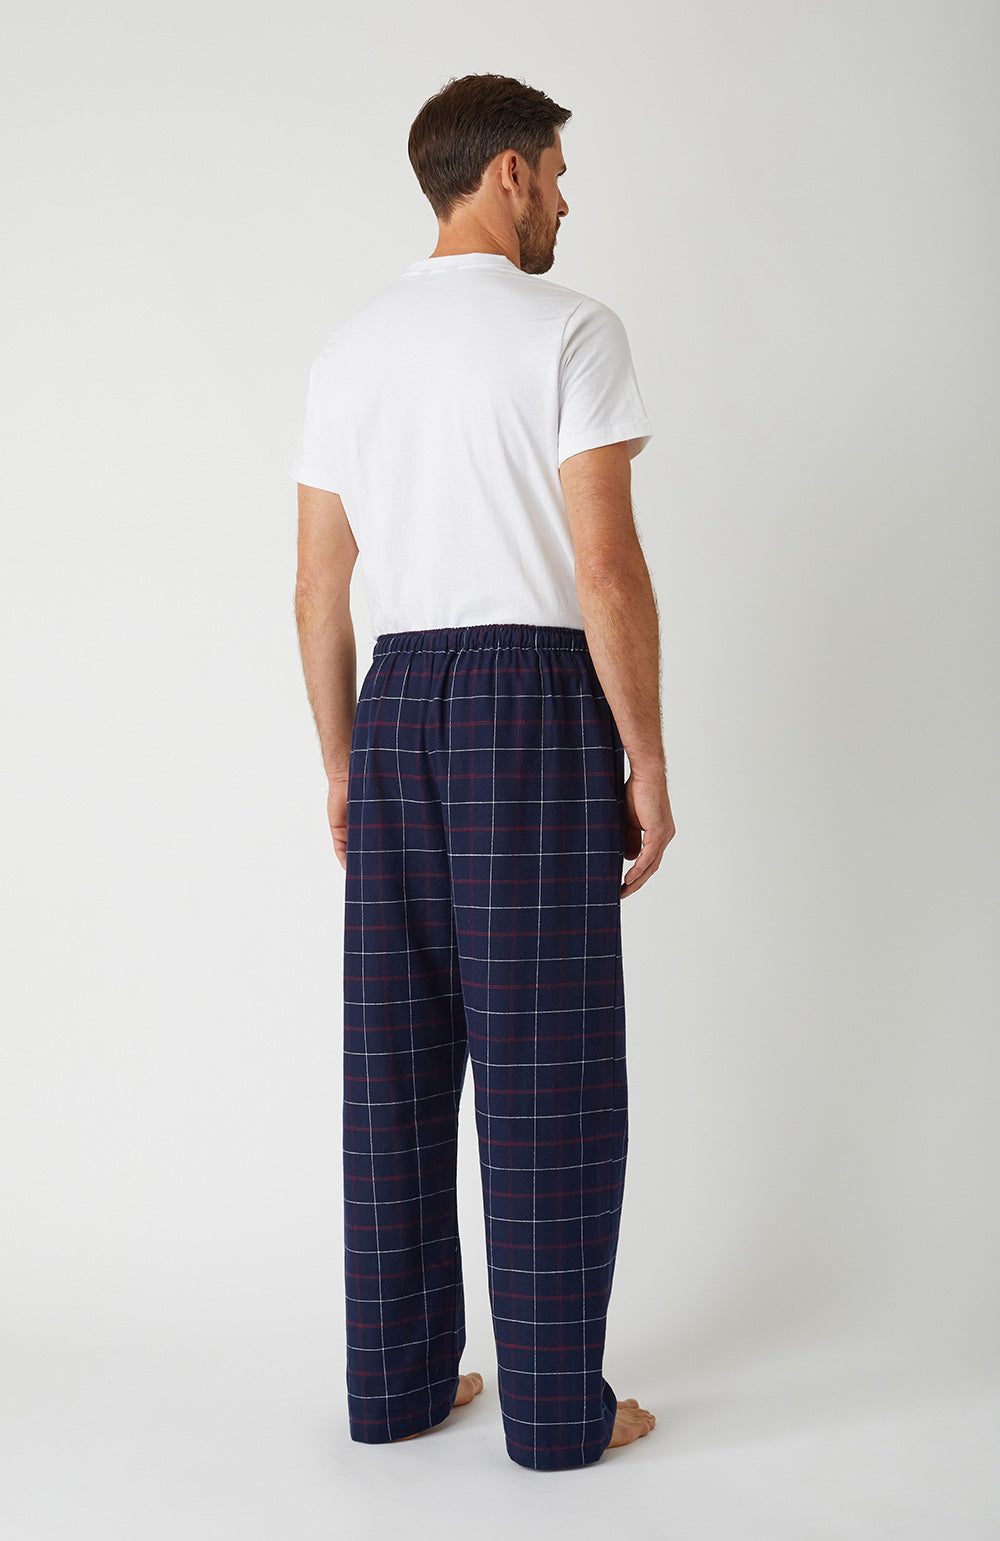 Brushed Cotton Pembury Pyjama Trousers | Bonsoir of London